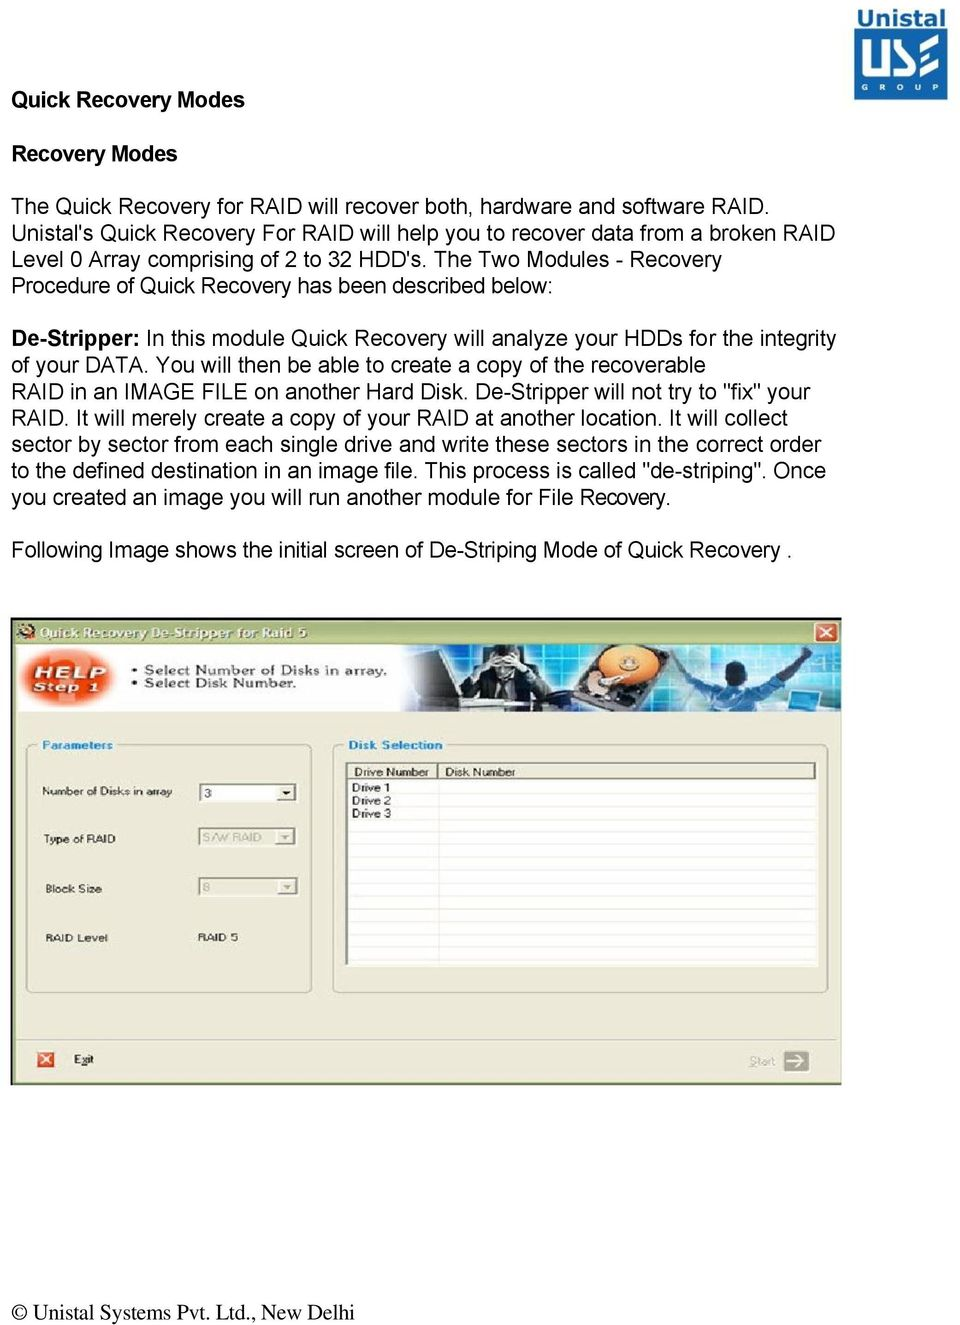 The Two Modules - Recovery Procedure of Quick Recovery has been described below: De-Stripper: In this module Quick Recovery will analyze your HDDs for the integrity of your DATA.